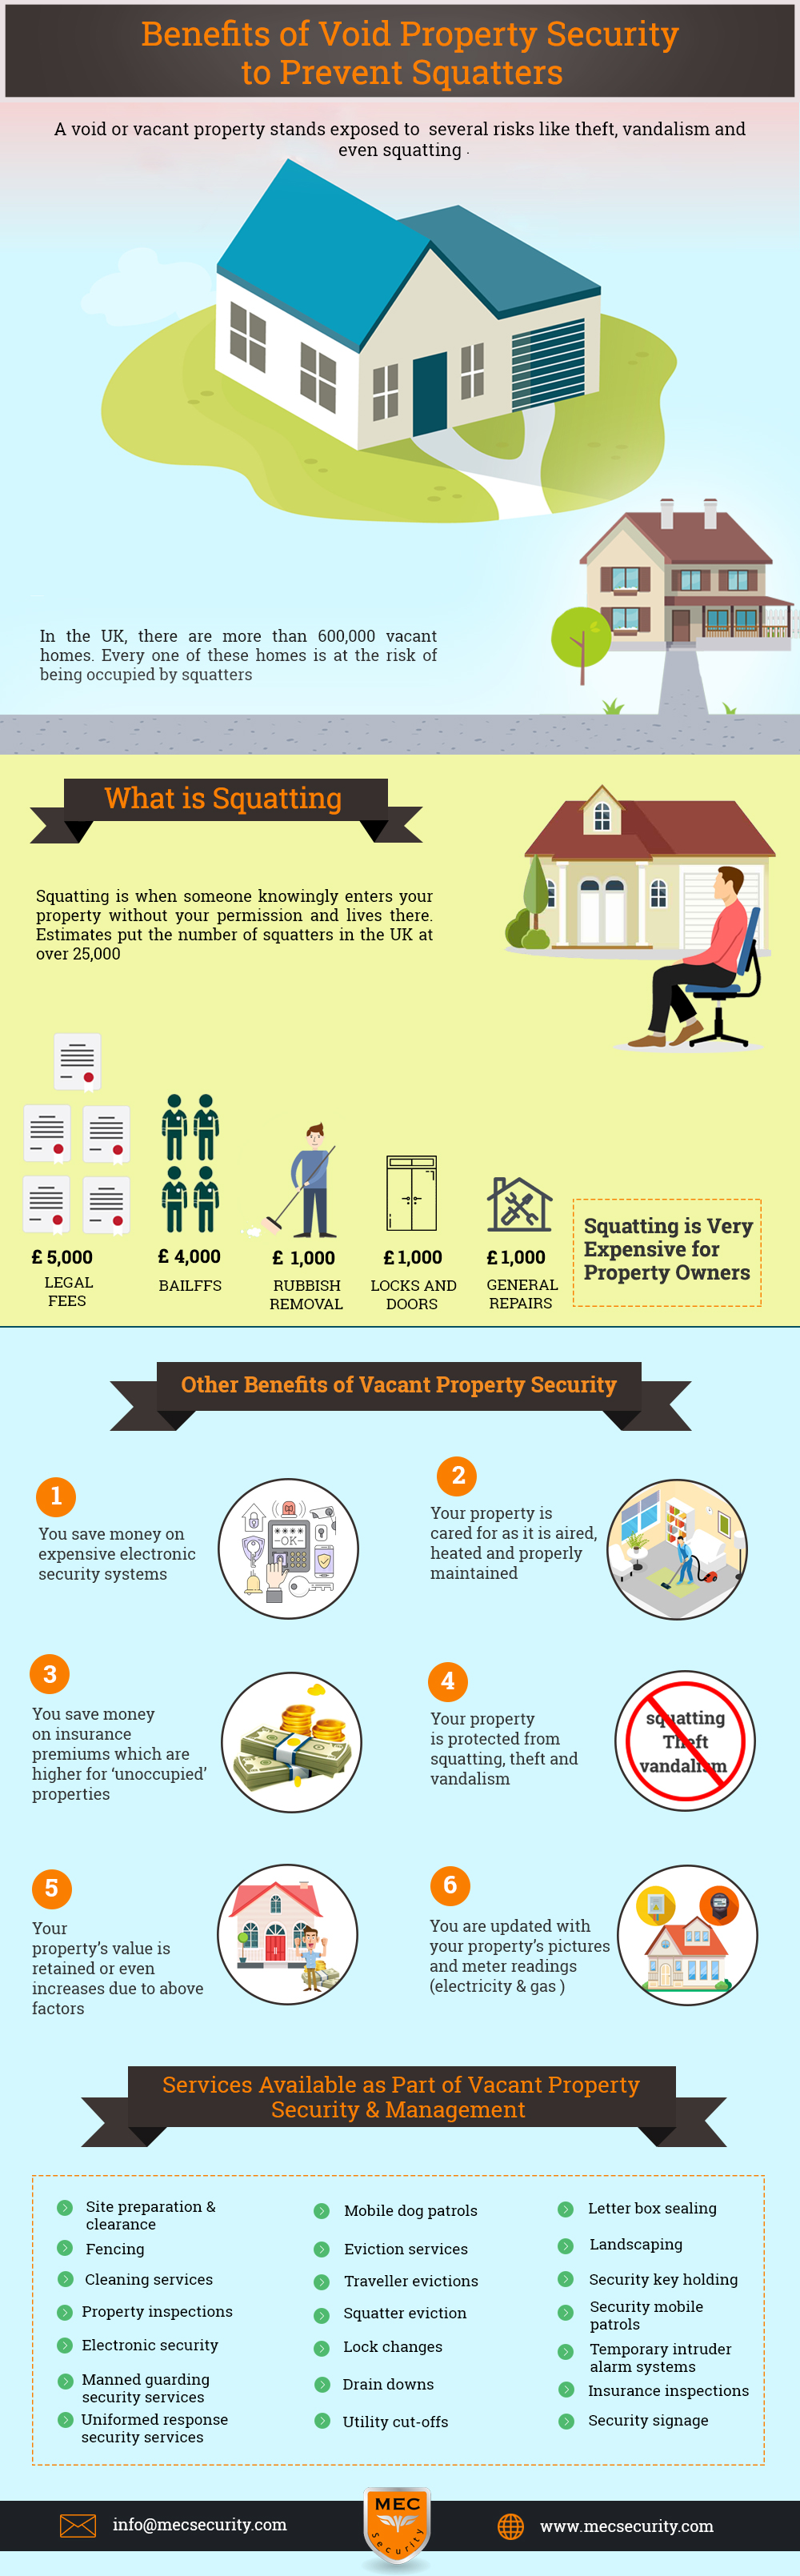 Benefits of Void Property Security